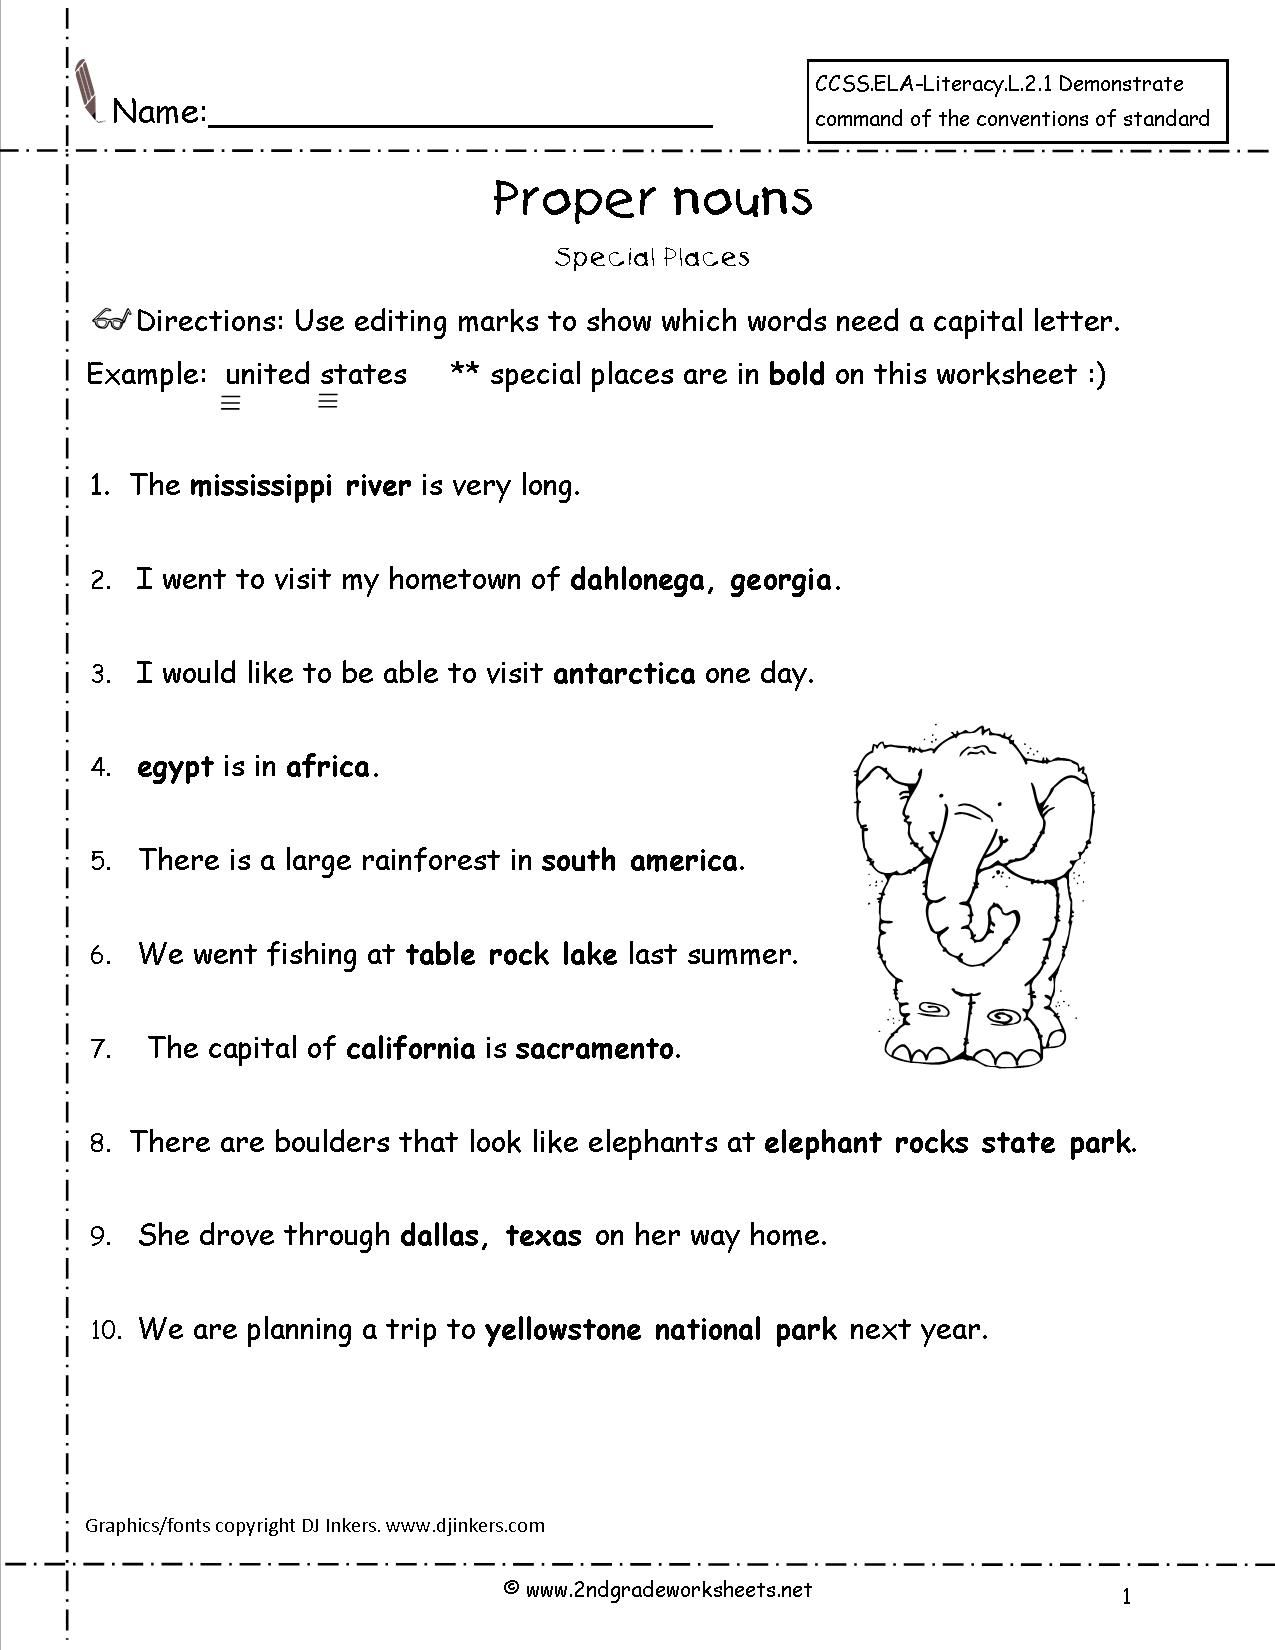 Worksheets Capitalization Worksheets proper nouns worksheet languageliteracy pinterest worksheet